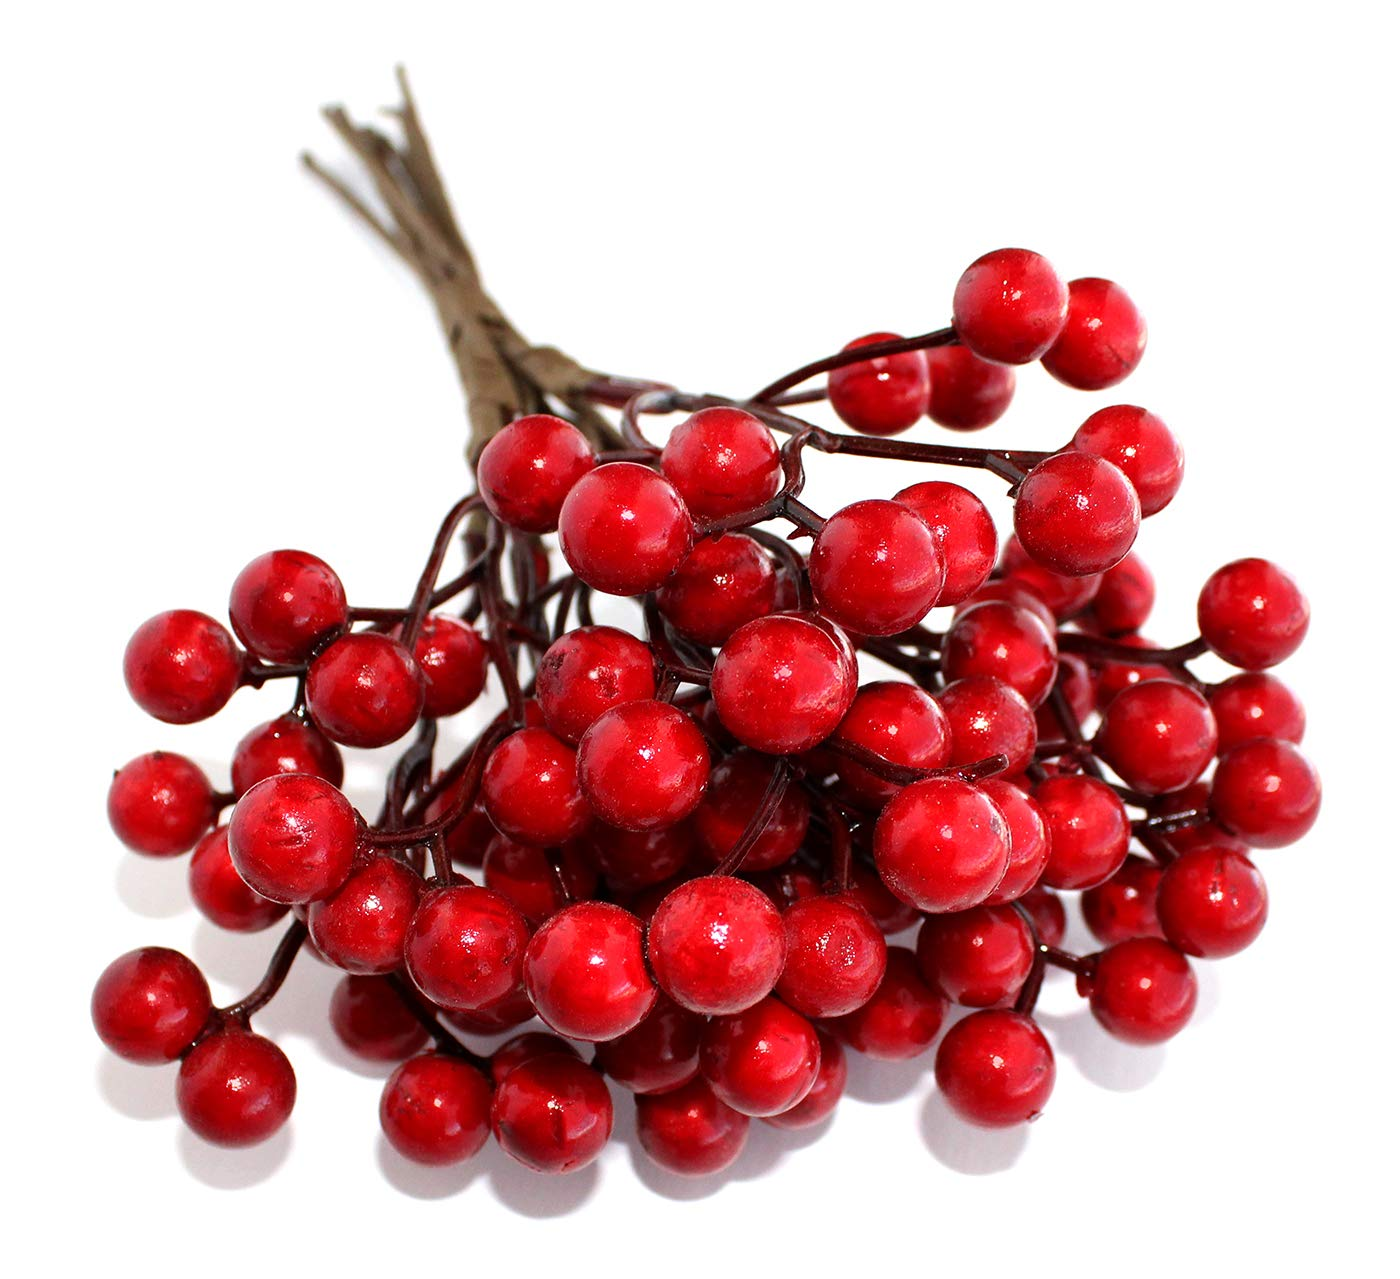 silk flower arrangements olyphan artificial berries red pip berry stems spray for diy crafts – wreath, garland, christmas ornaments decoration - decorative winter floral picks for craft decorations/home holiday decor